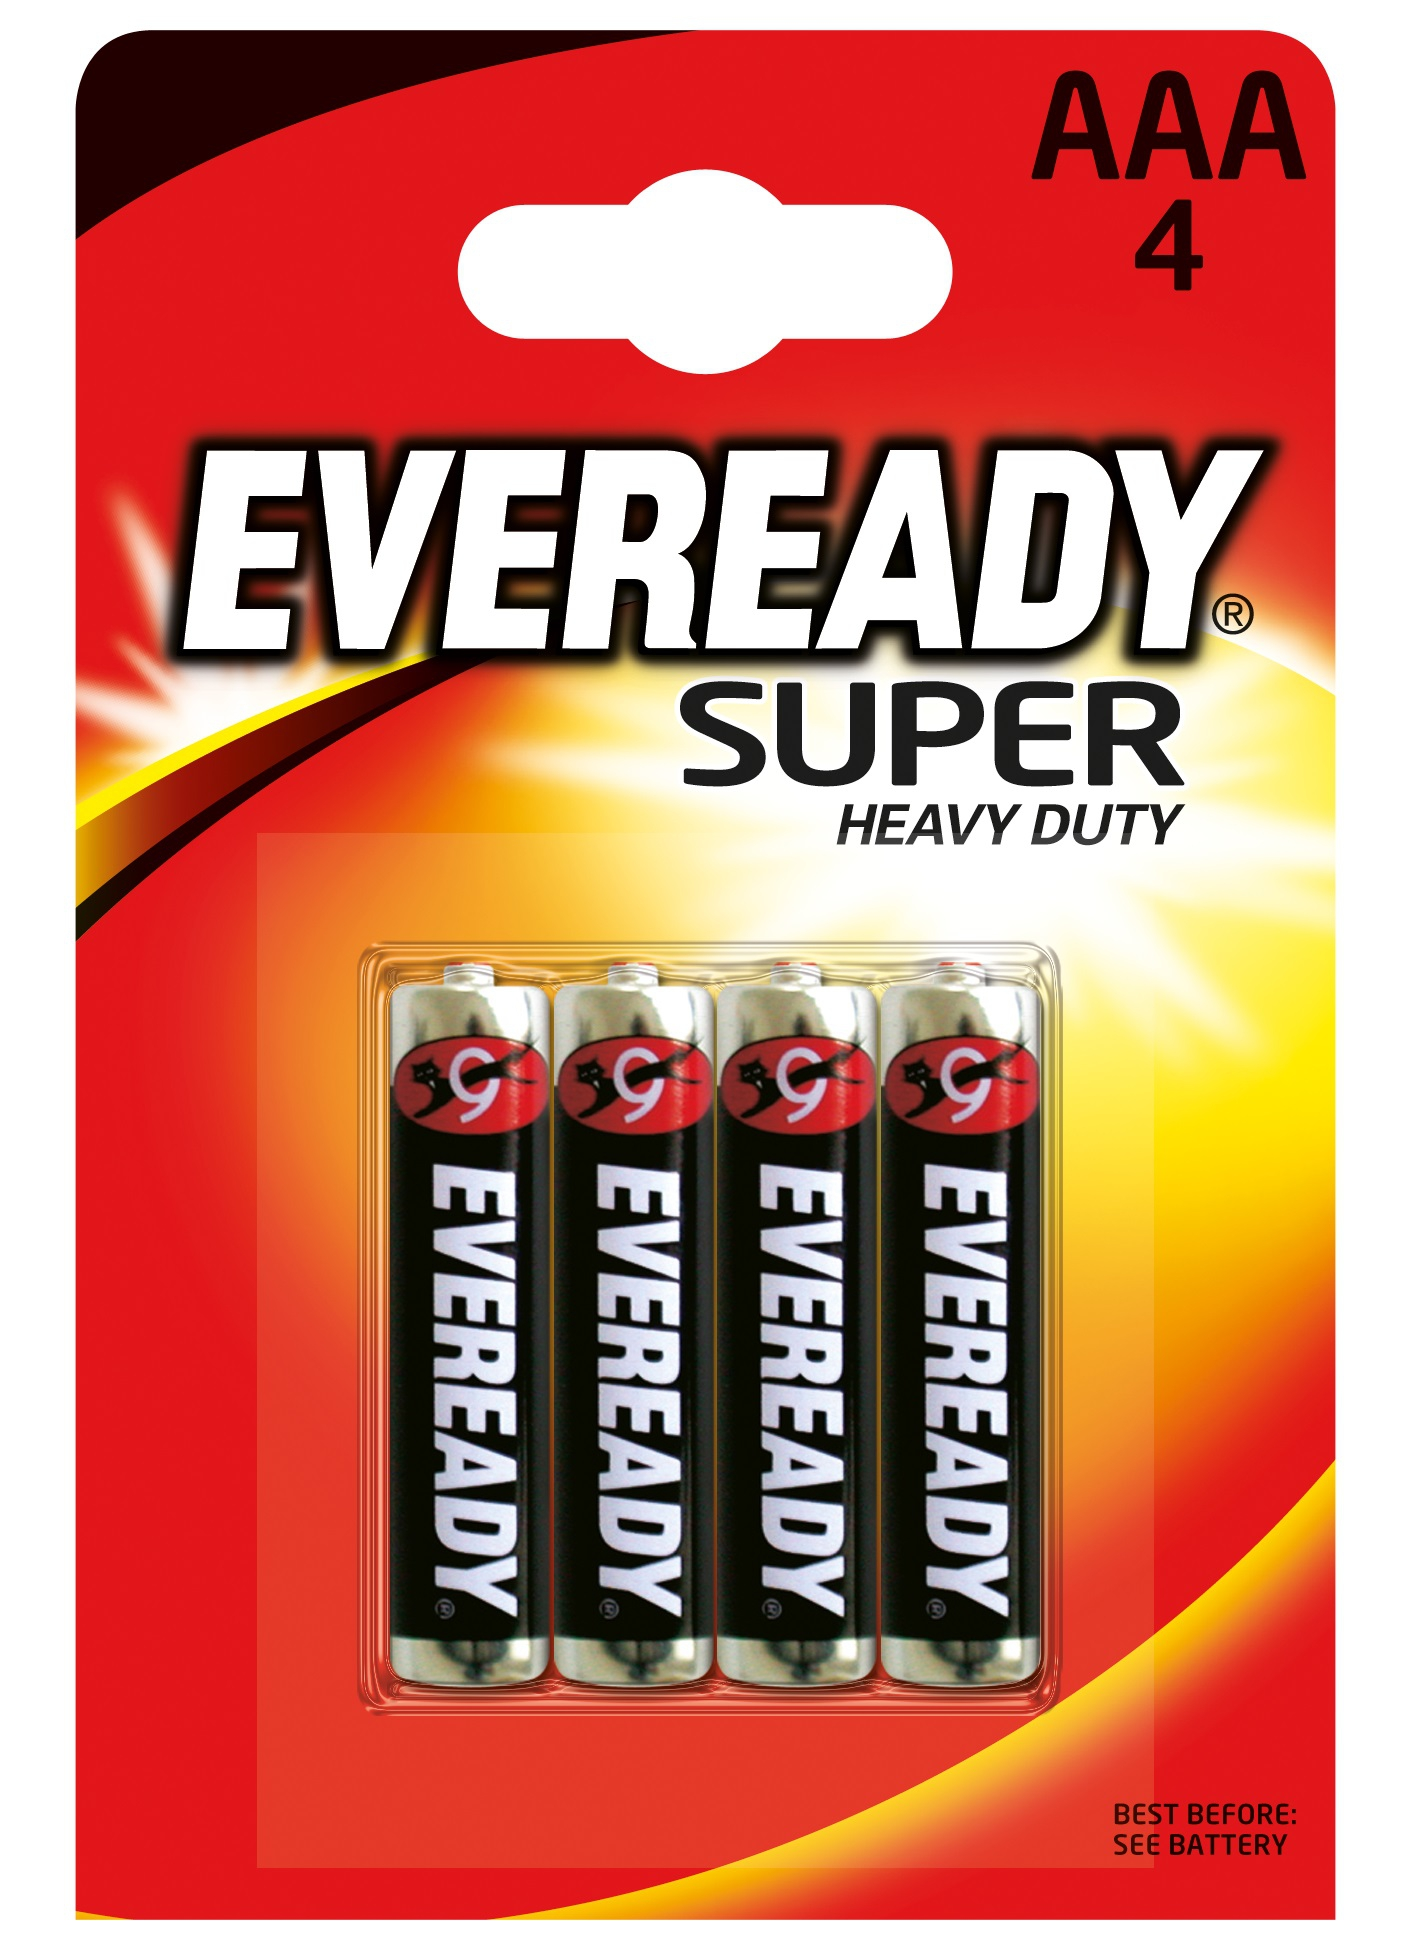 Батарейки Eveready Super Heavy Duty AAA heavy duty ac230v 370w electrical auto sliding gate motor opener engine magnetic limit switch for residential area with 4m rack